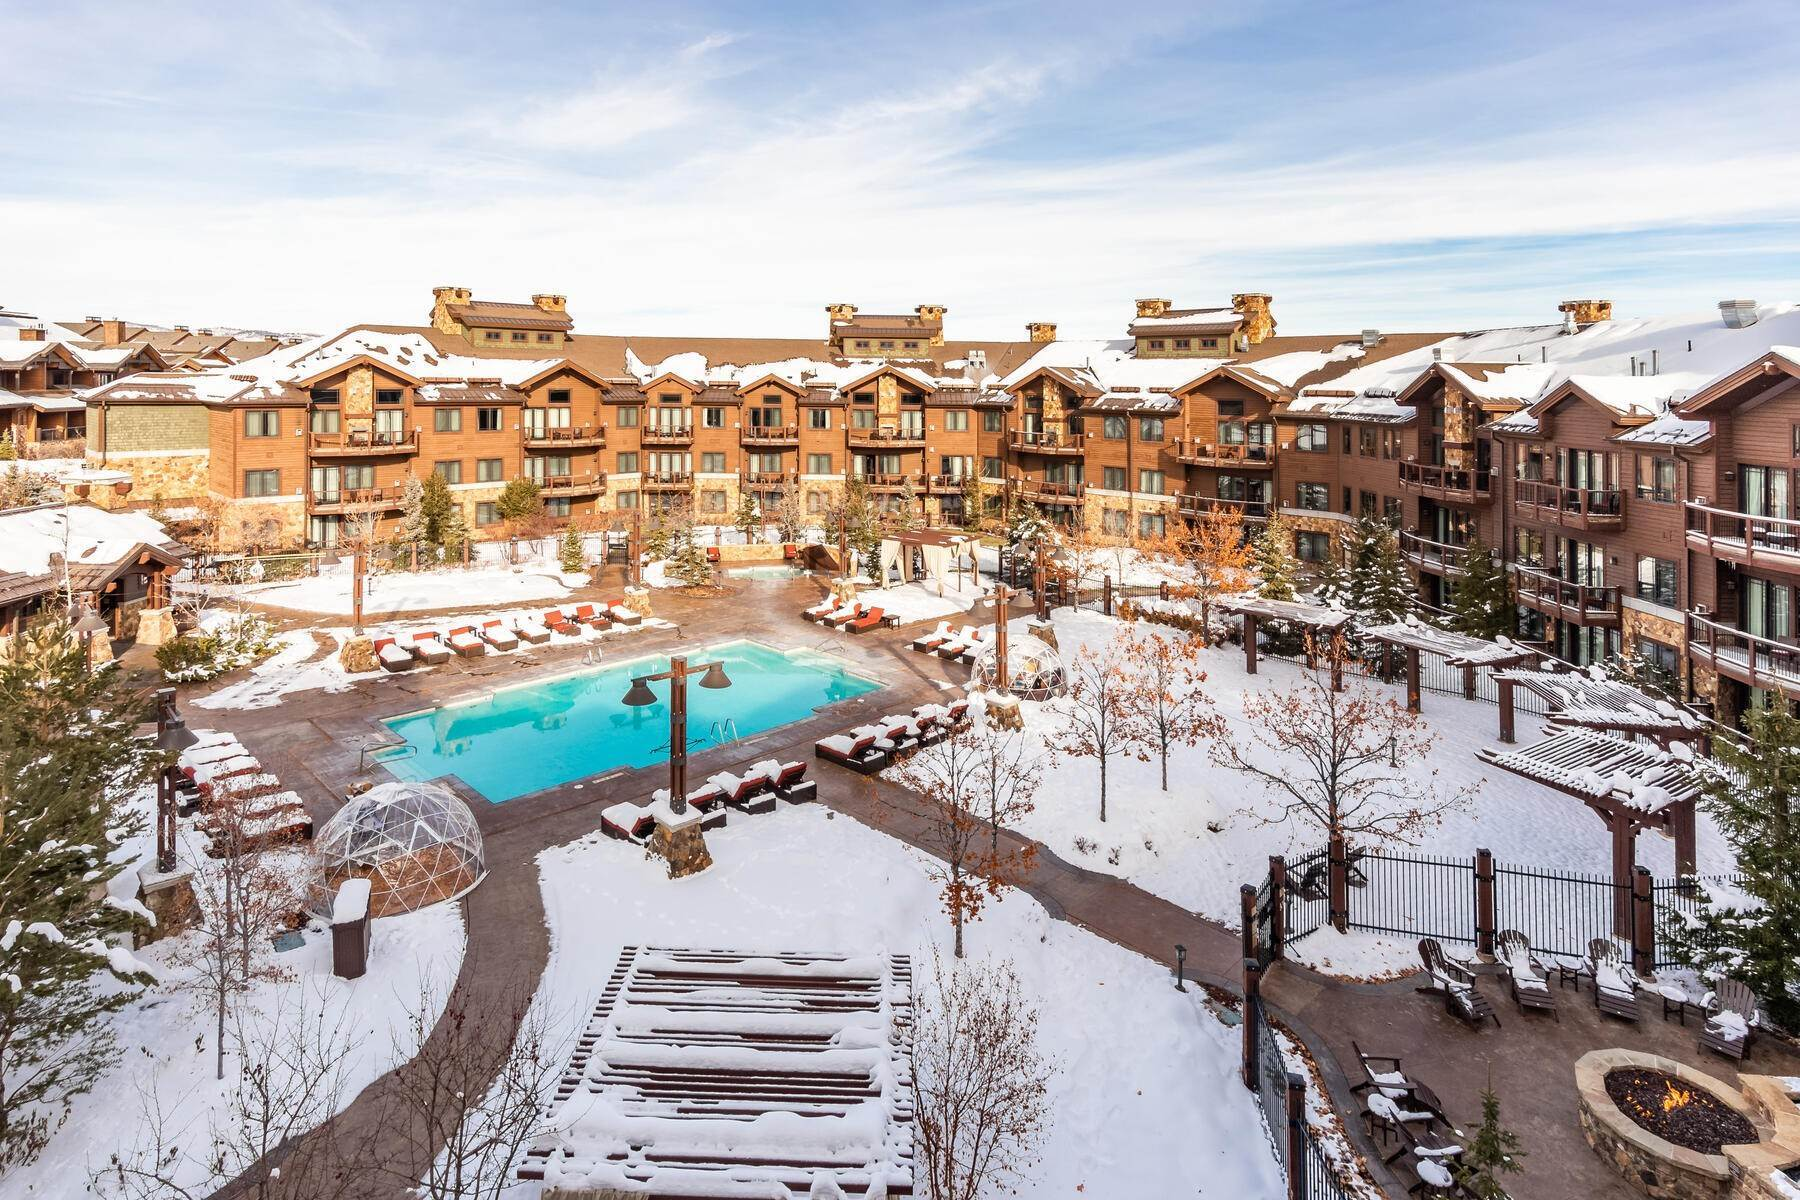 16. Condominiums for Sale at Only 4-Bedroom Available at Waldorf Astoria, Top Floor, Penthouse Unit 2100 W Frostwood Blvd, #7117 Park City, Utah 84098 United States